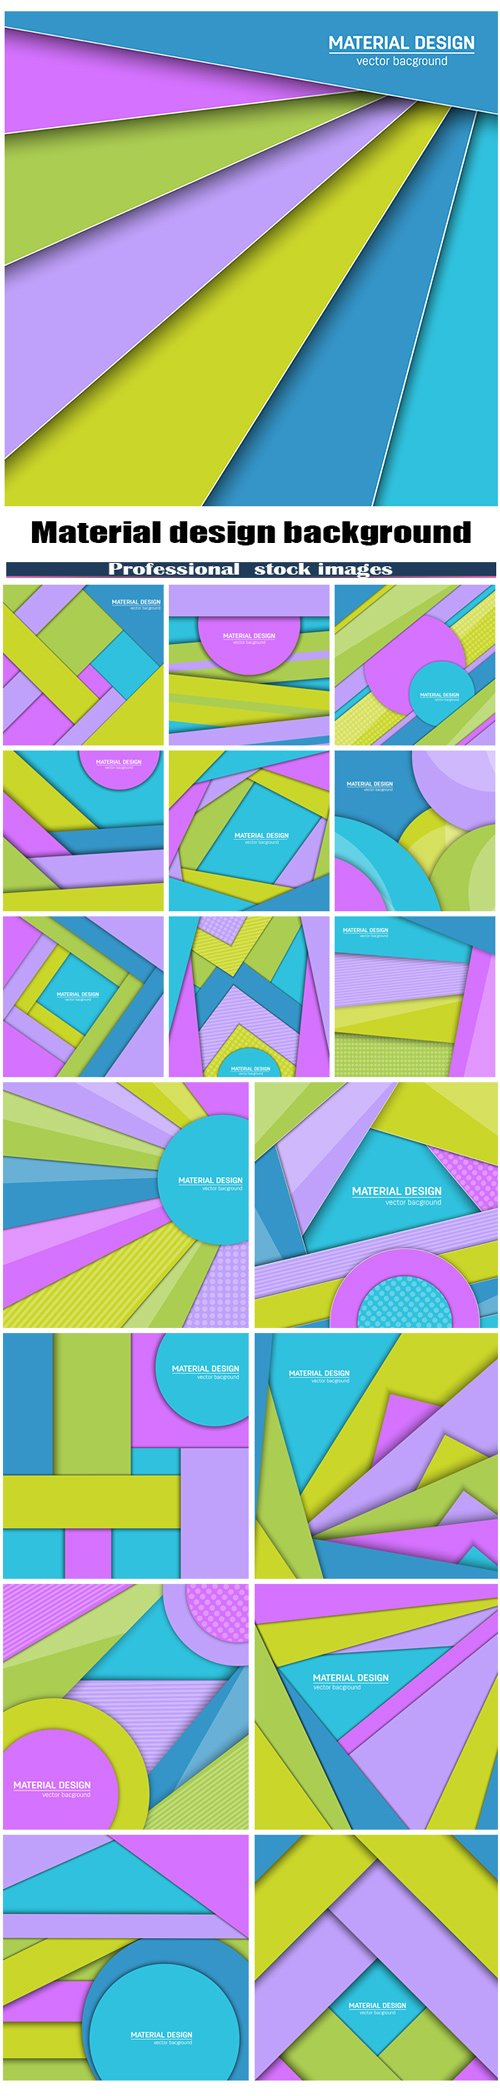 Vector material design background